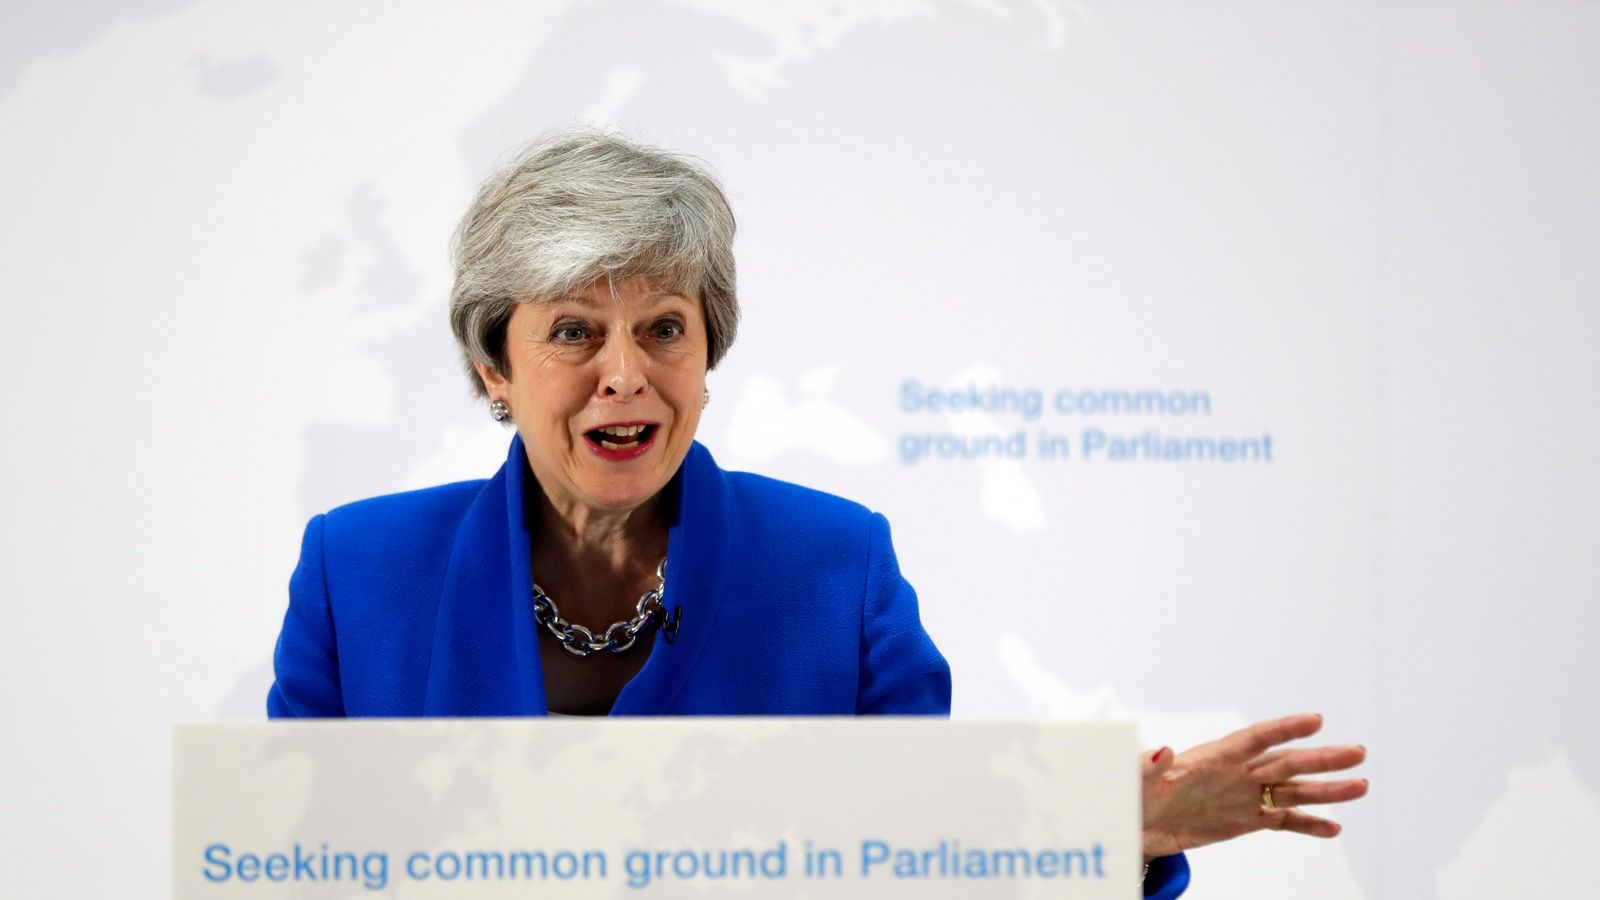 PM's offer of second referendum vote fails to win over MPs